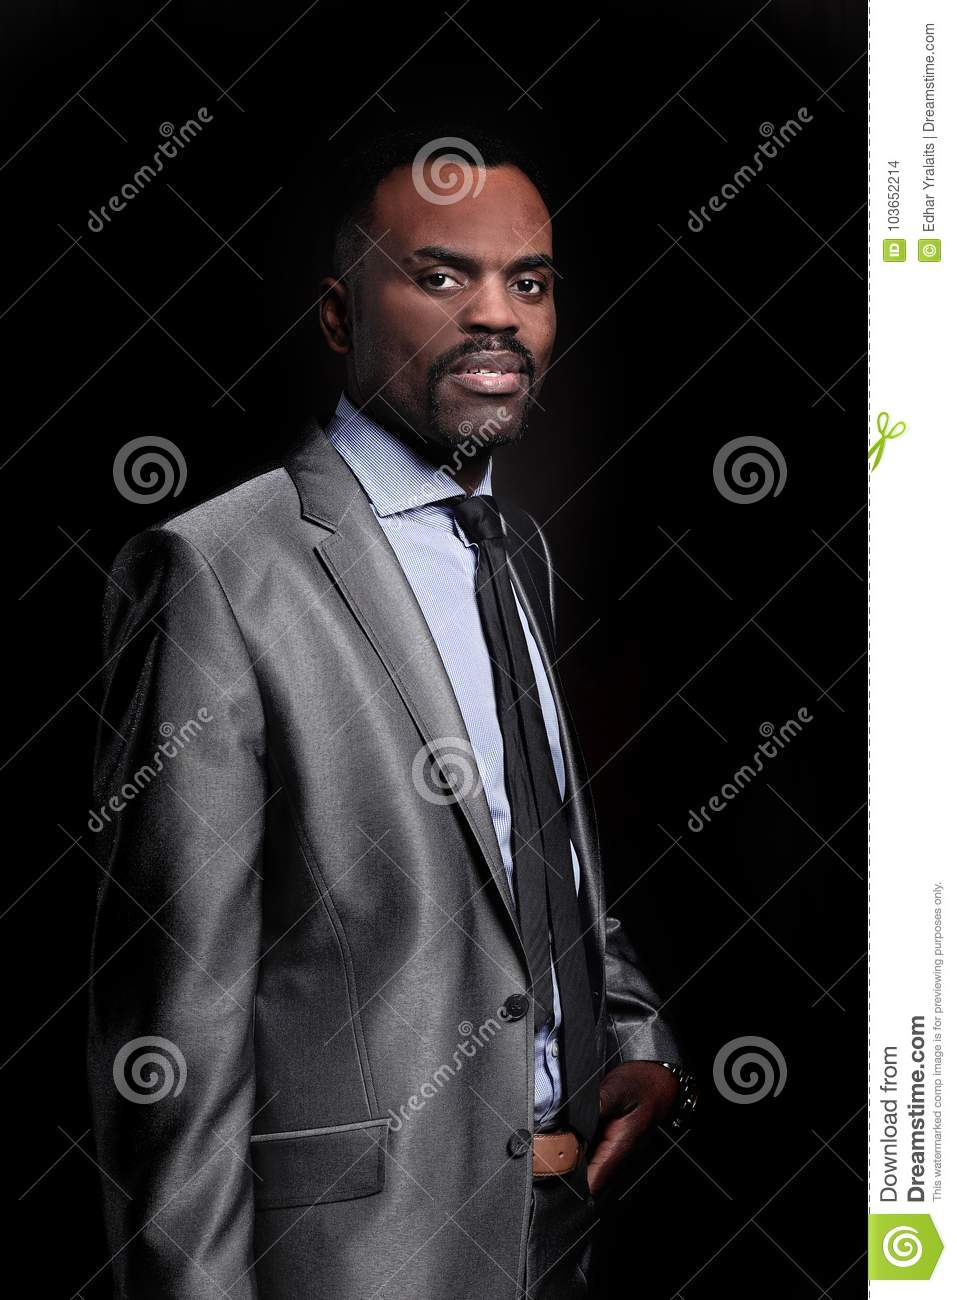 a3786902b97 Mature Black Businessman Wearing Suit And Tie Stock Photo - Image of ...